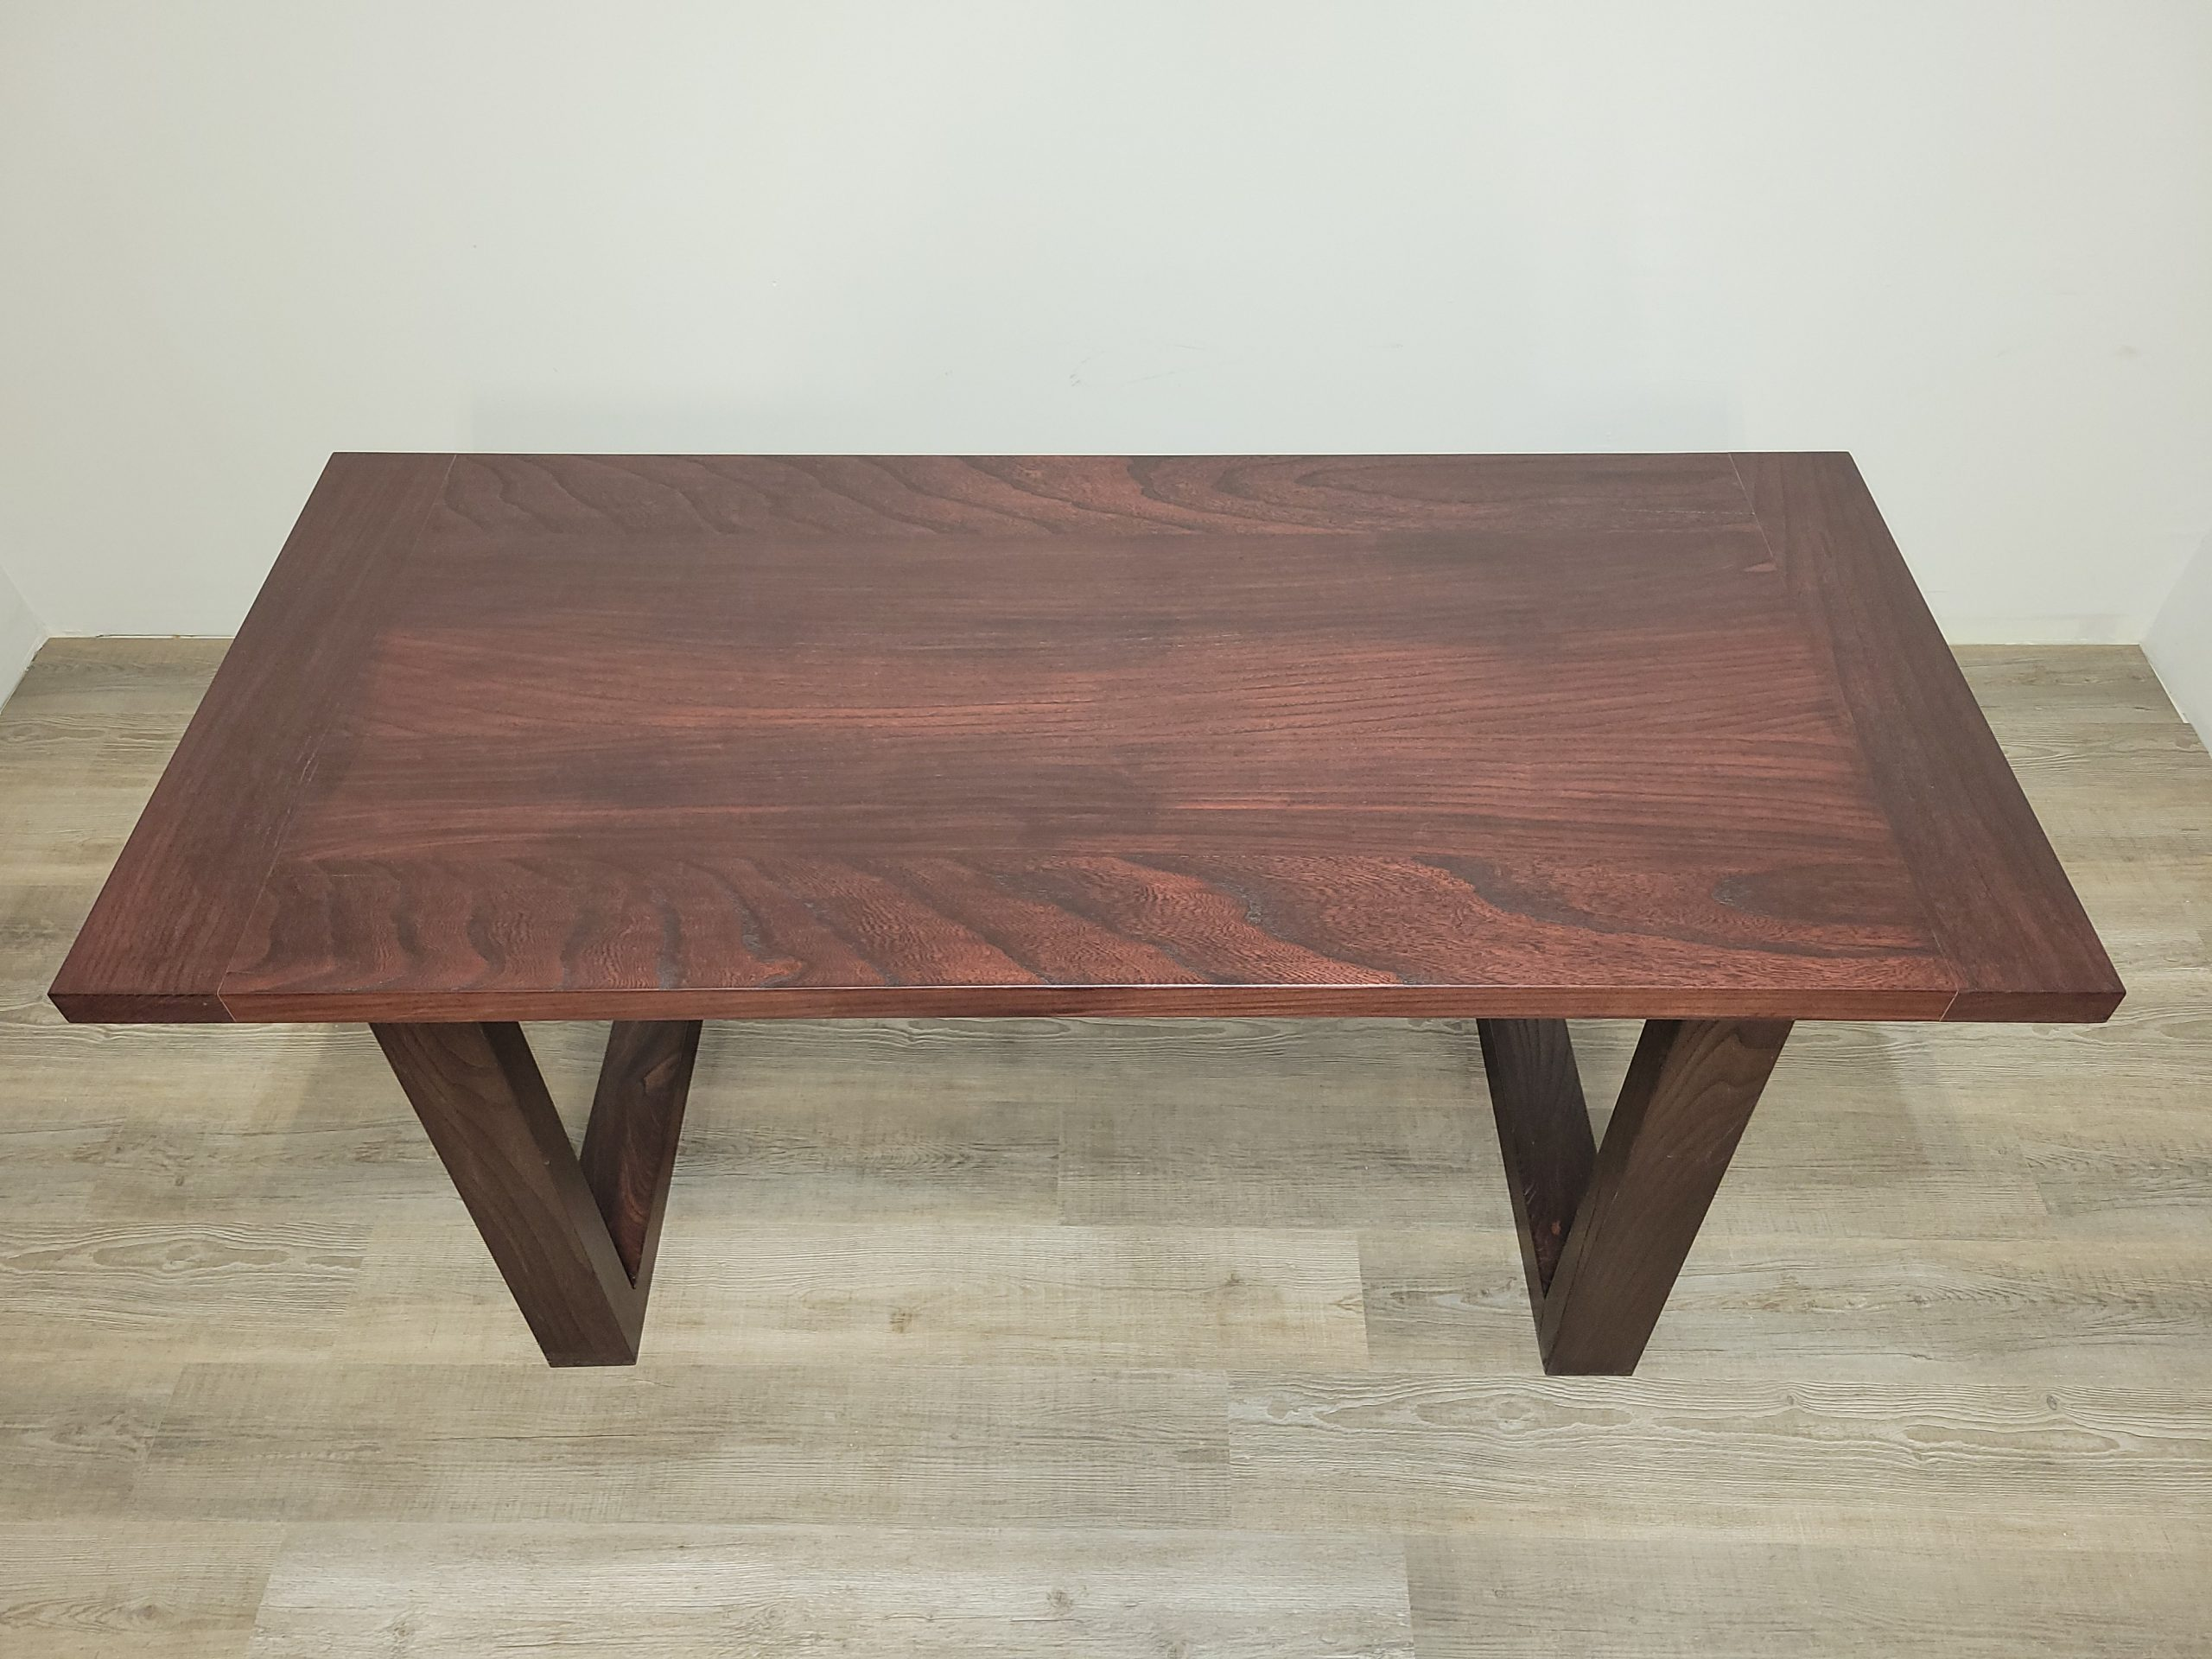 https://competitivewoodcraft.com/wp-content/uploads/2020/11/Dining-Table-2-scaled.jpg